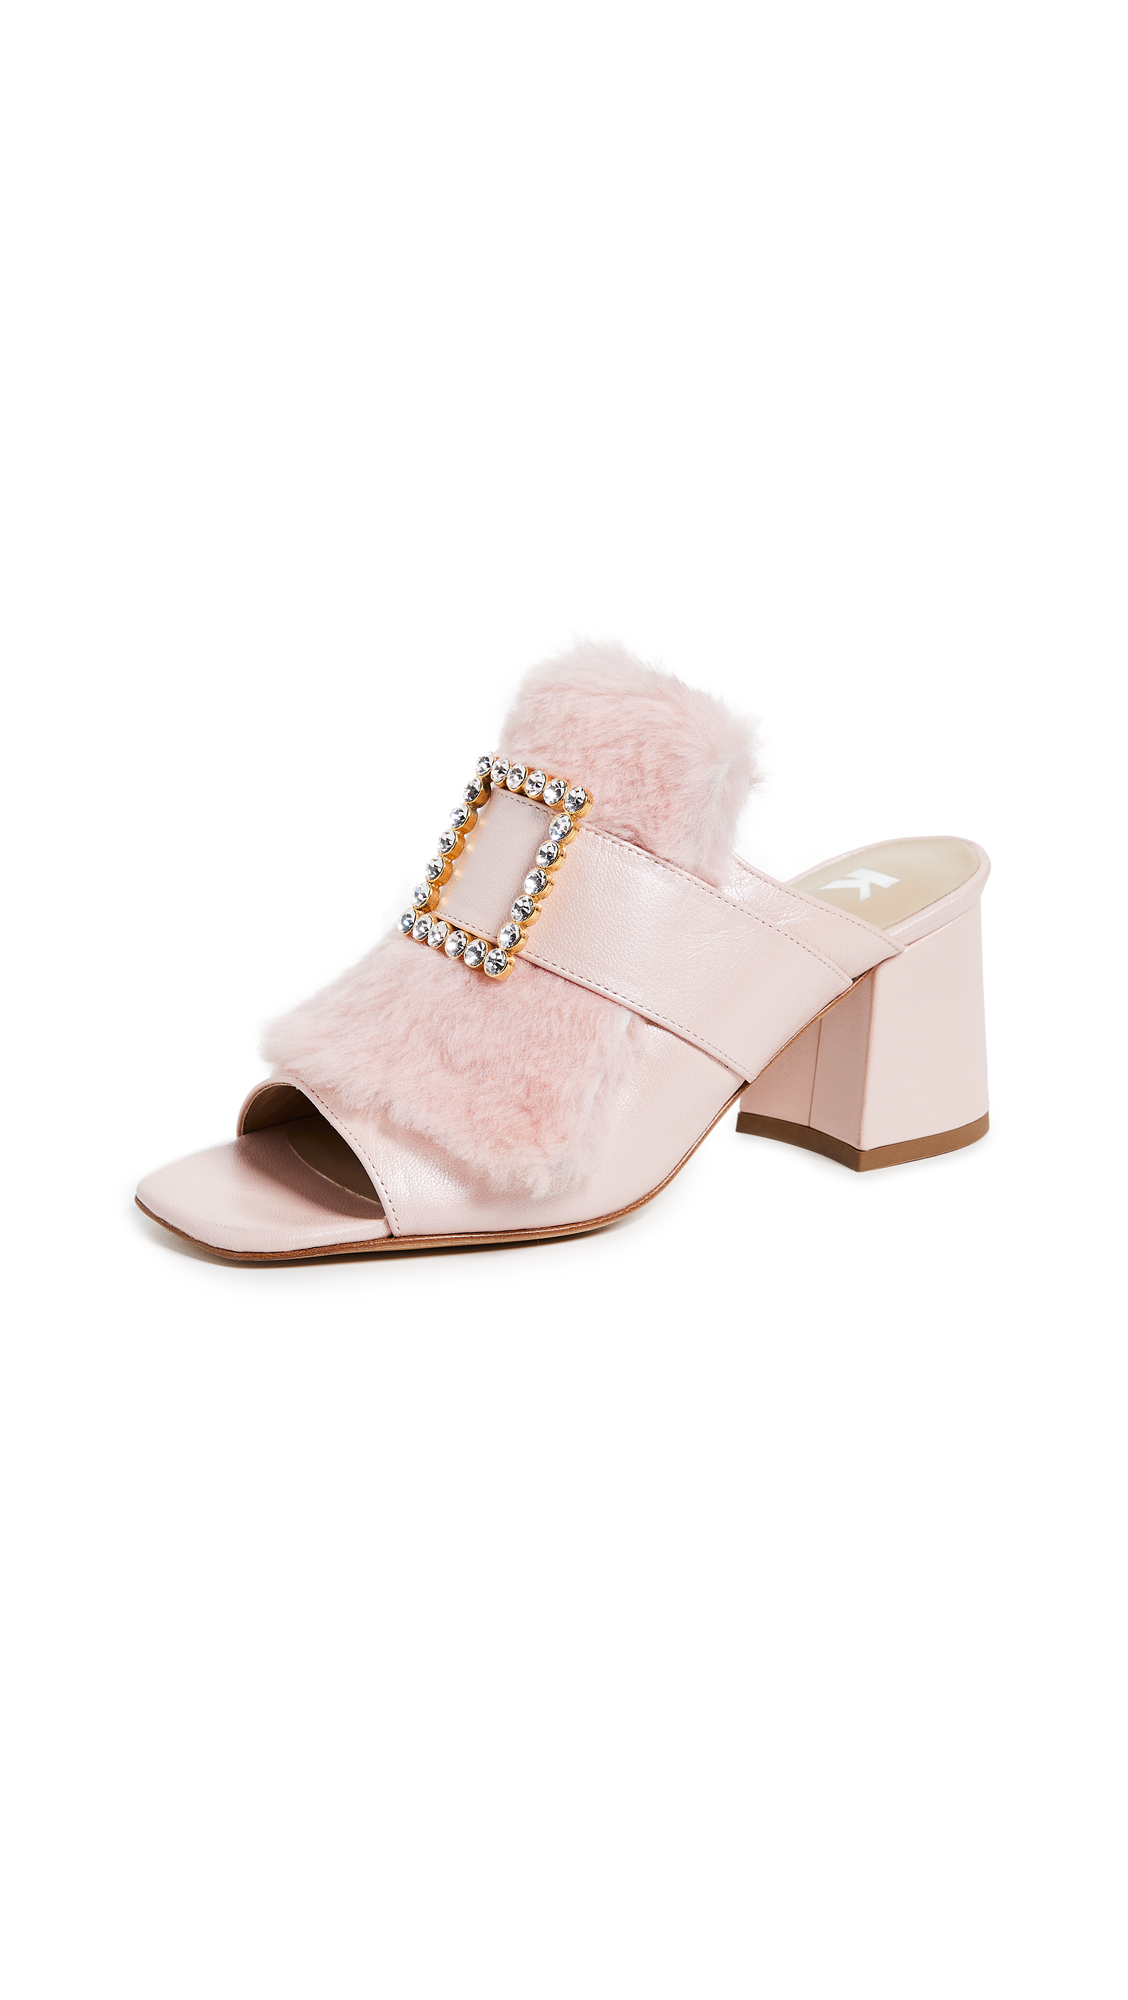 Kalda Jones Buckle Mules - Pink